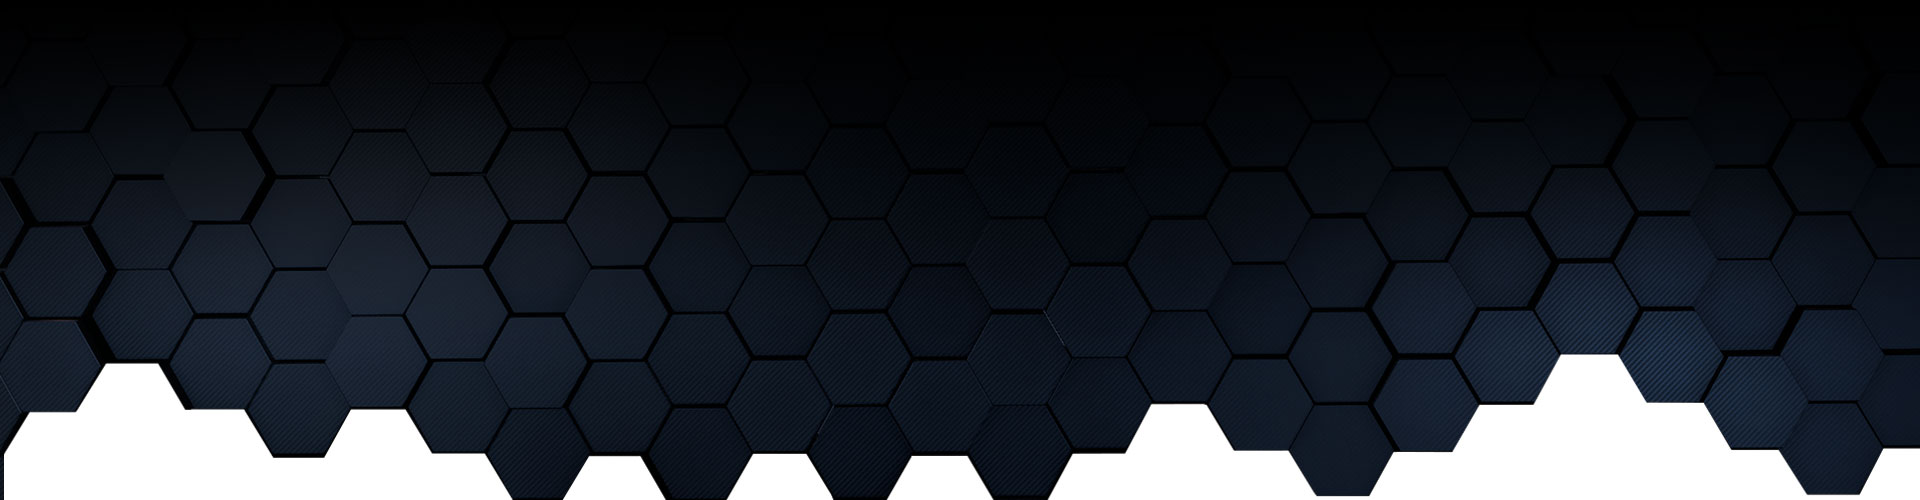 Ombre black to blue hexagons